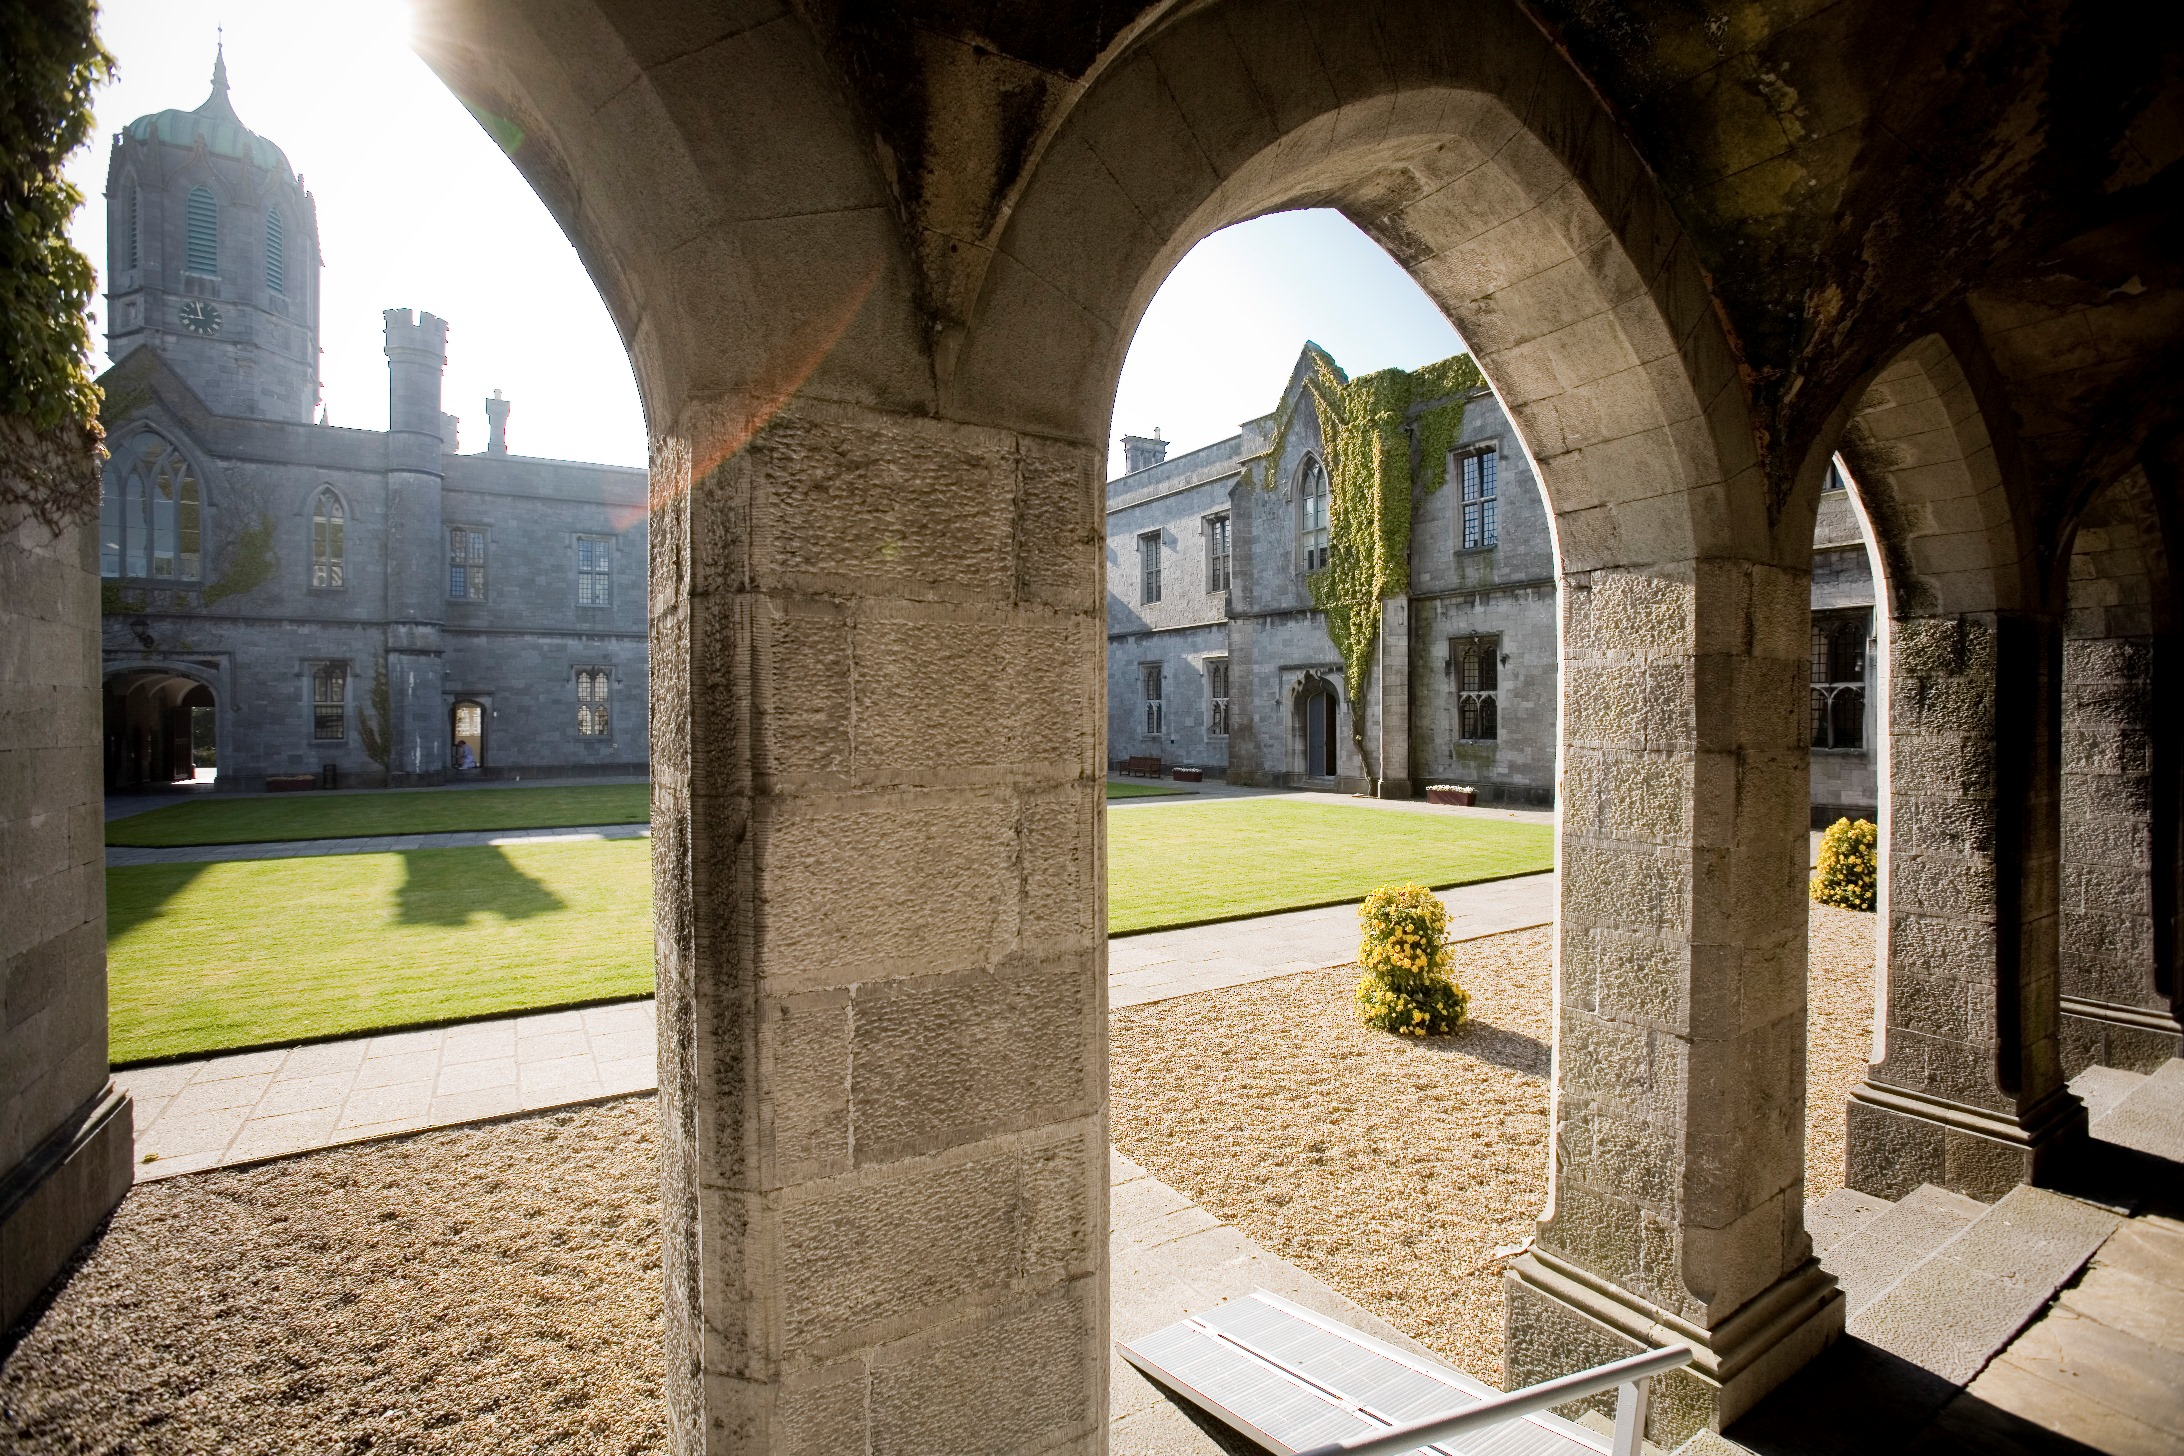 Q&A: Study and Extern in Ireland This Summer